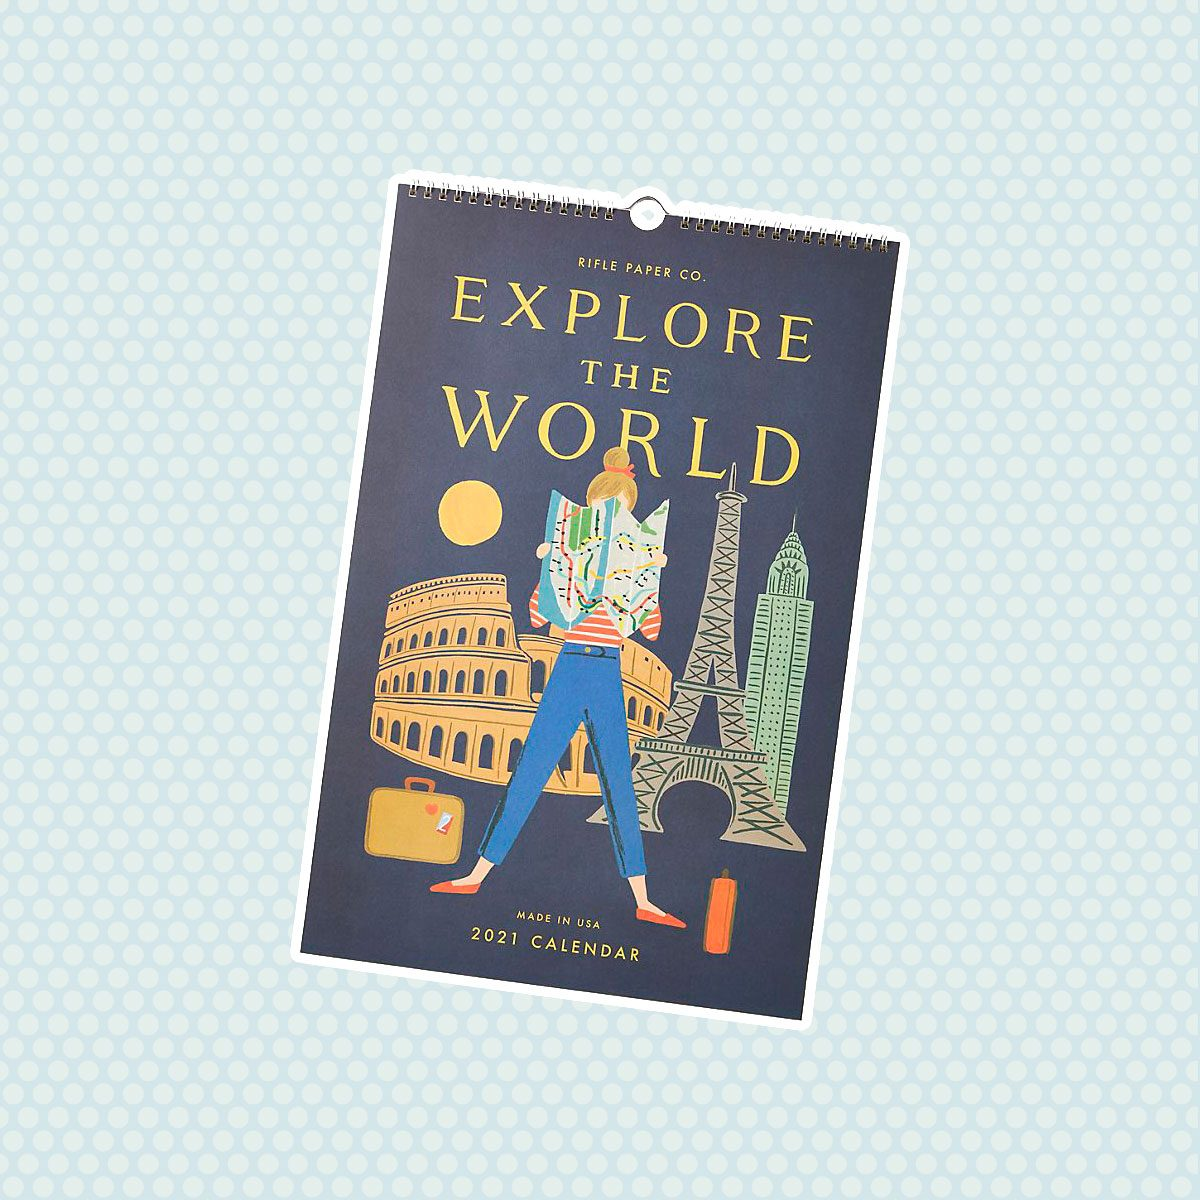 Rifle Paper Co. Explore The World 2021 Wall Calendar